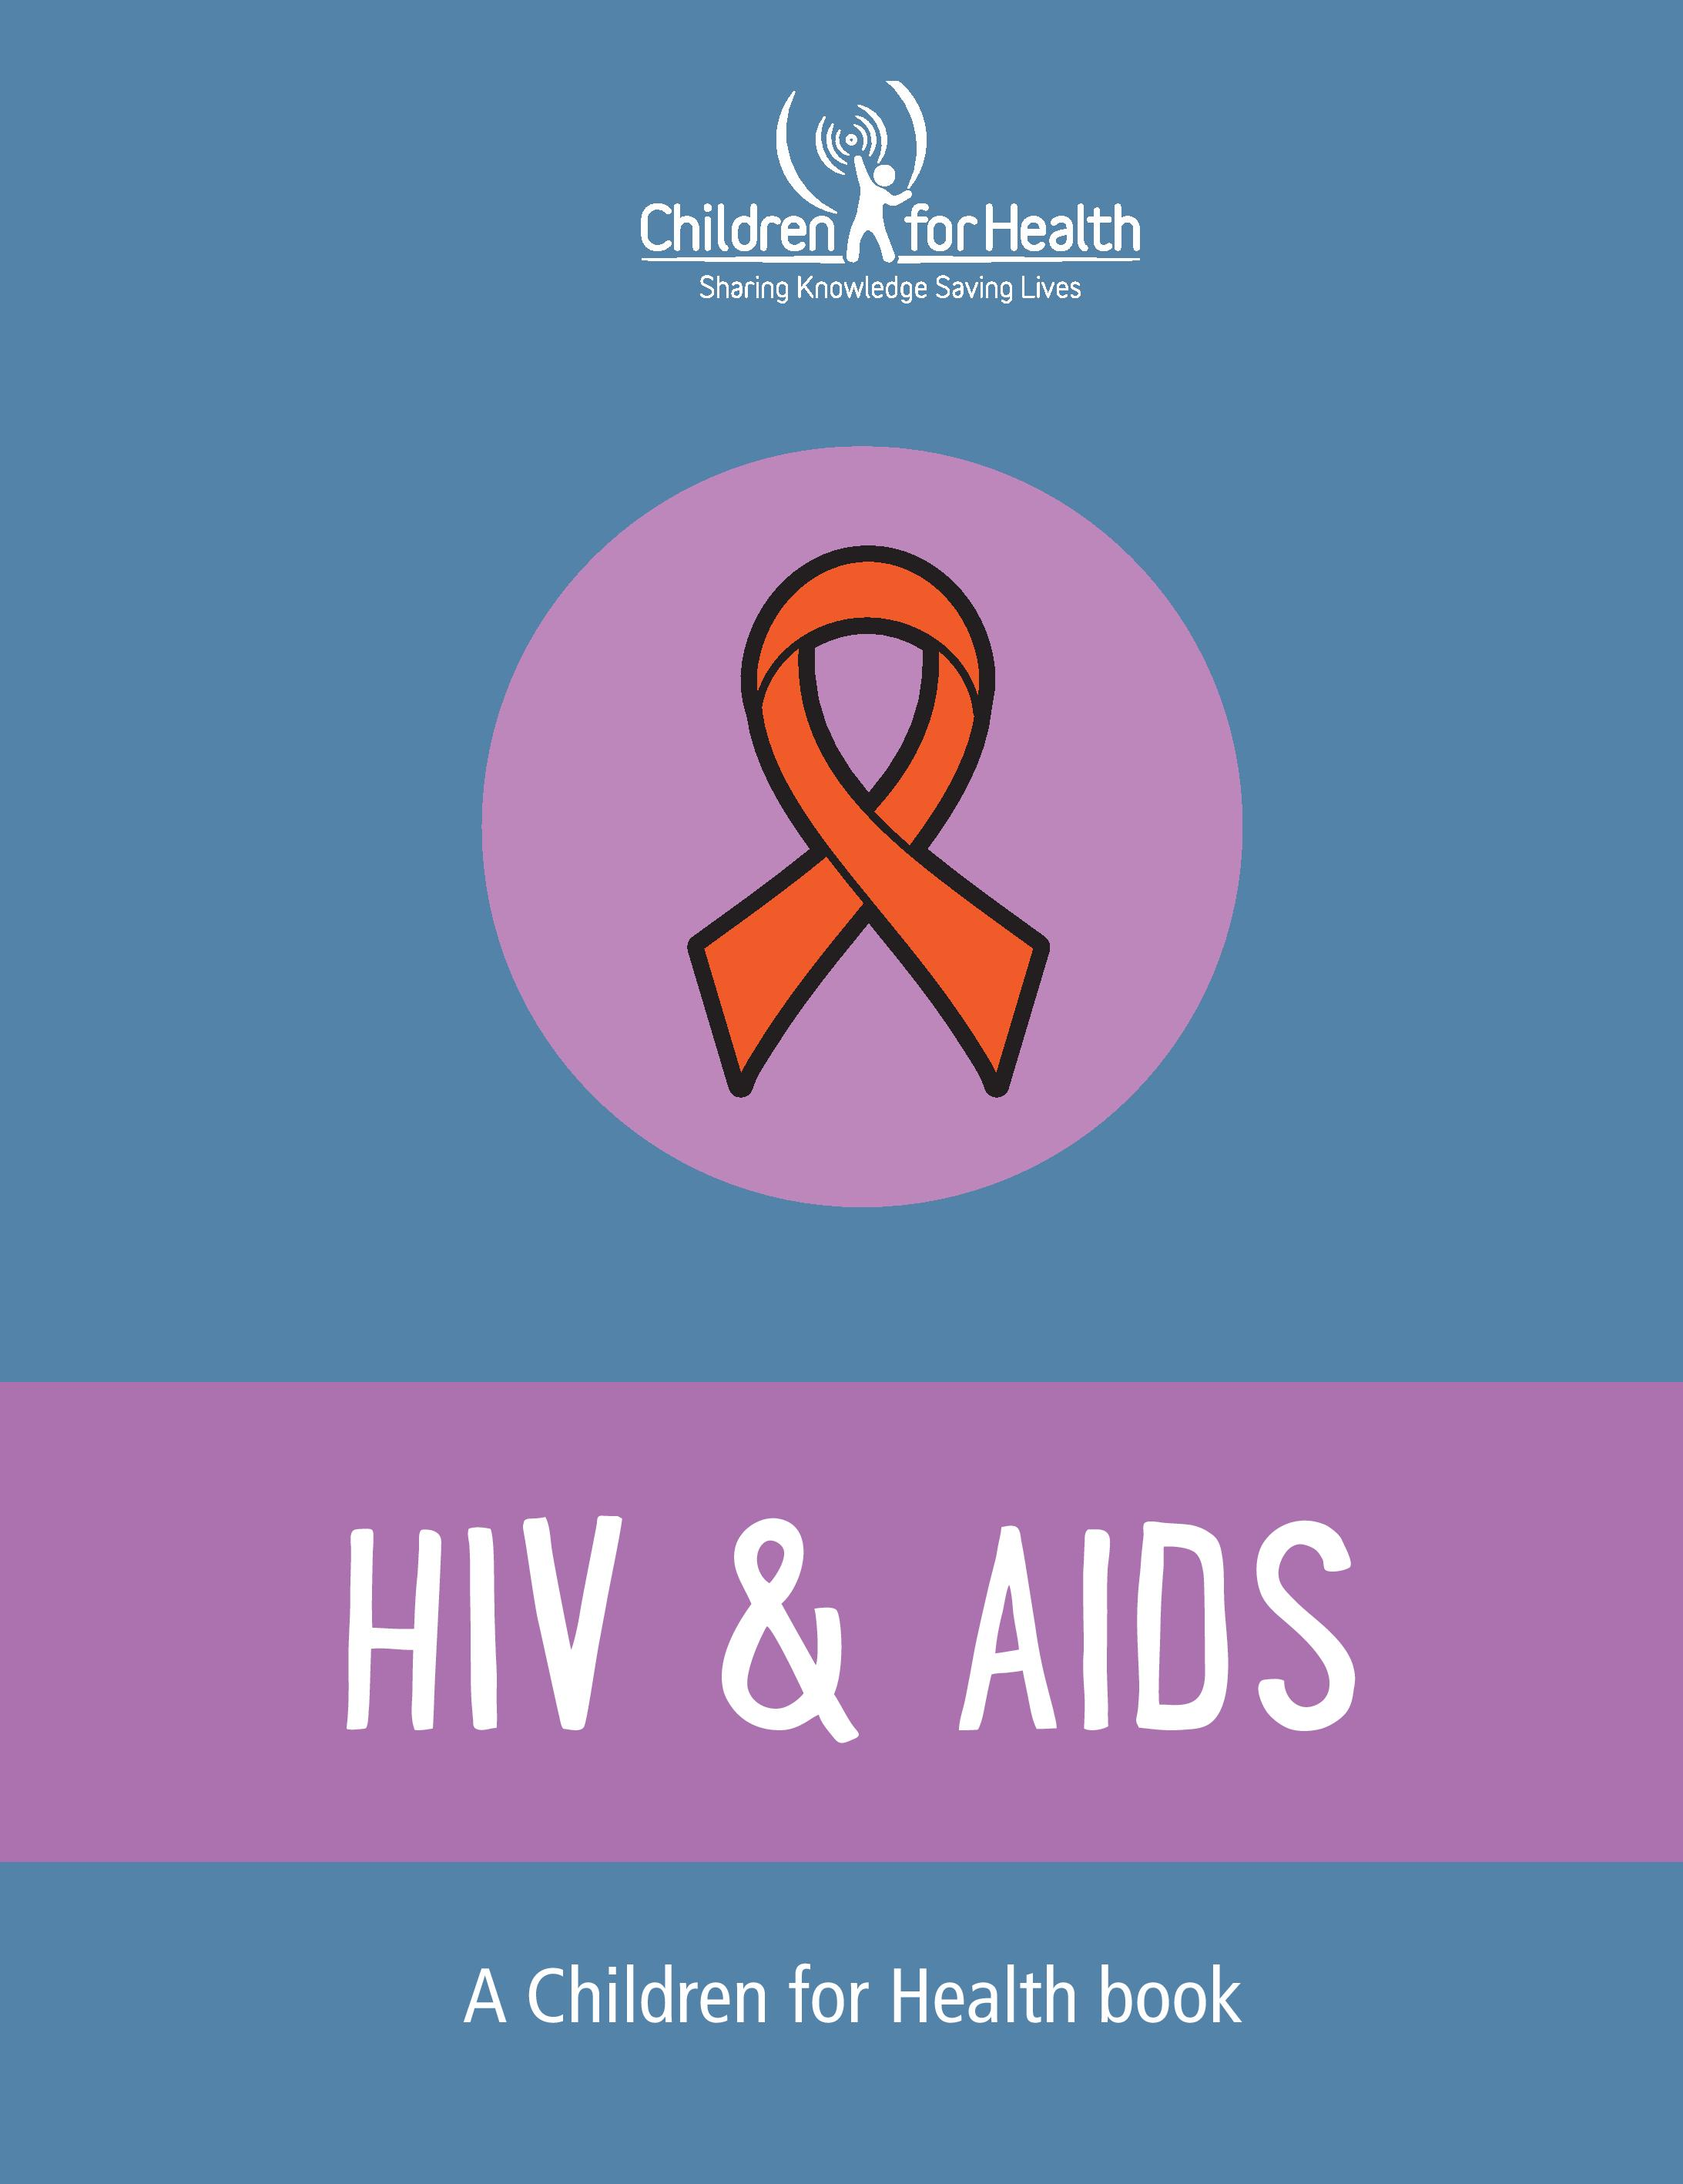 A red ribbon on a purple background with HIV & AIDS in large text below. It is the cover of a Children for Health book.